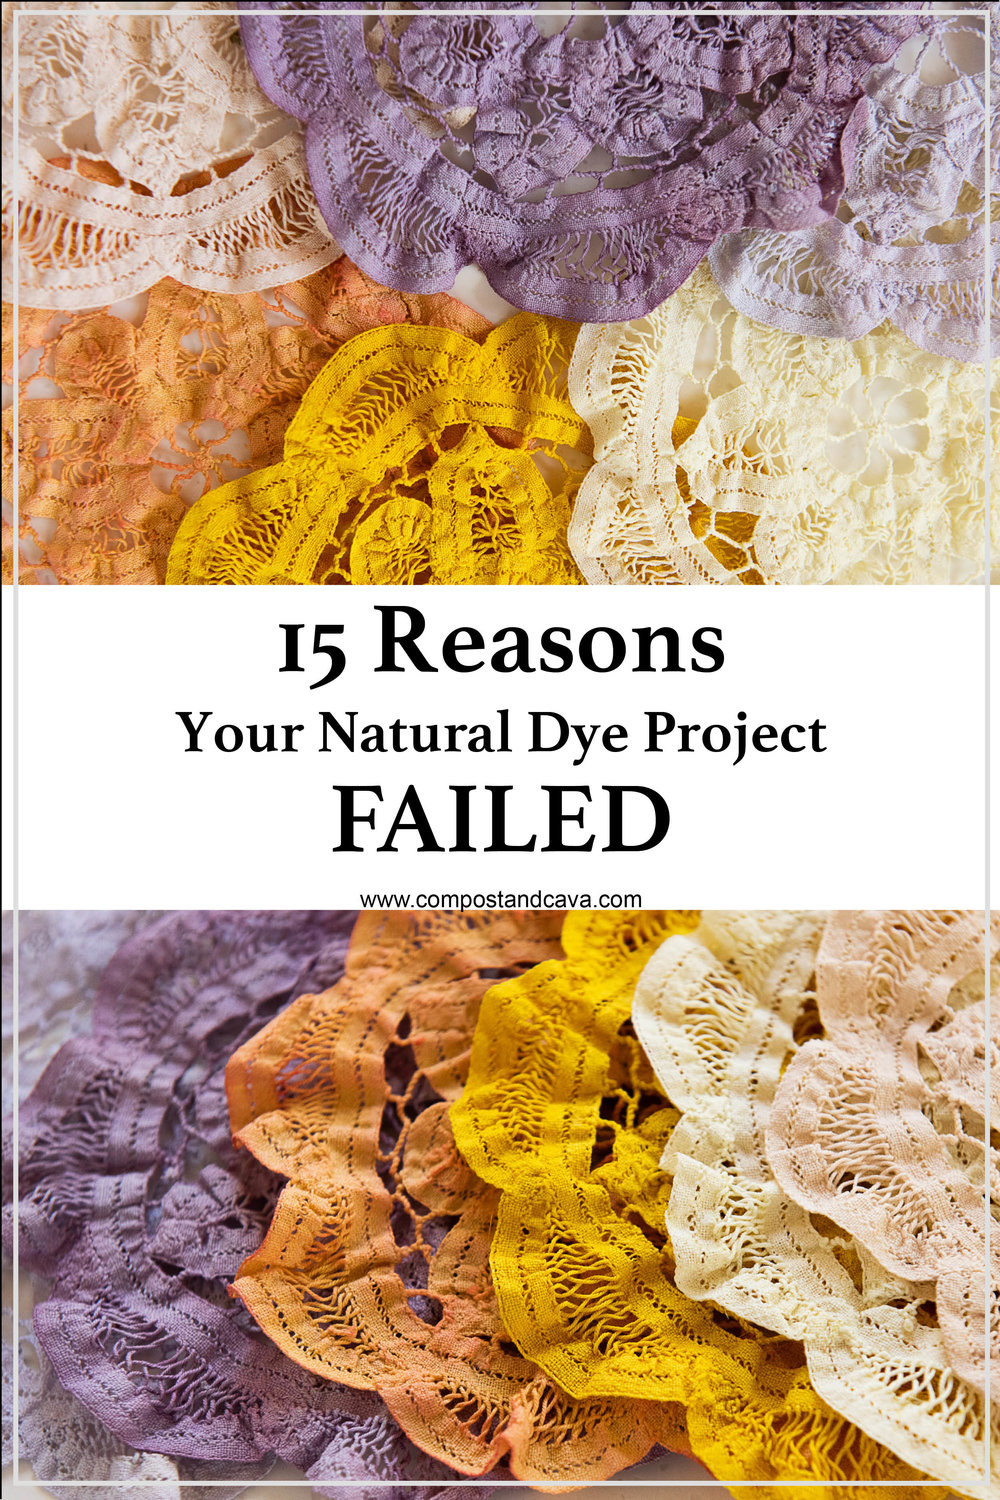 15 Reasons Your Natural Dye Project Failed